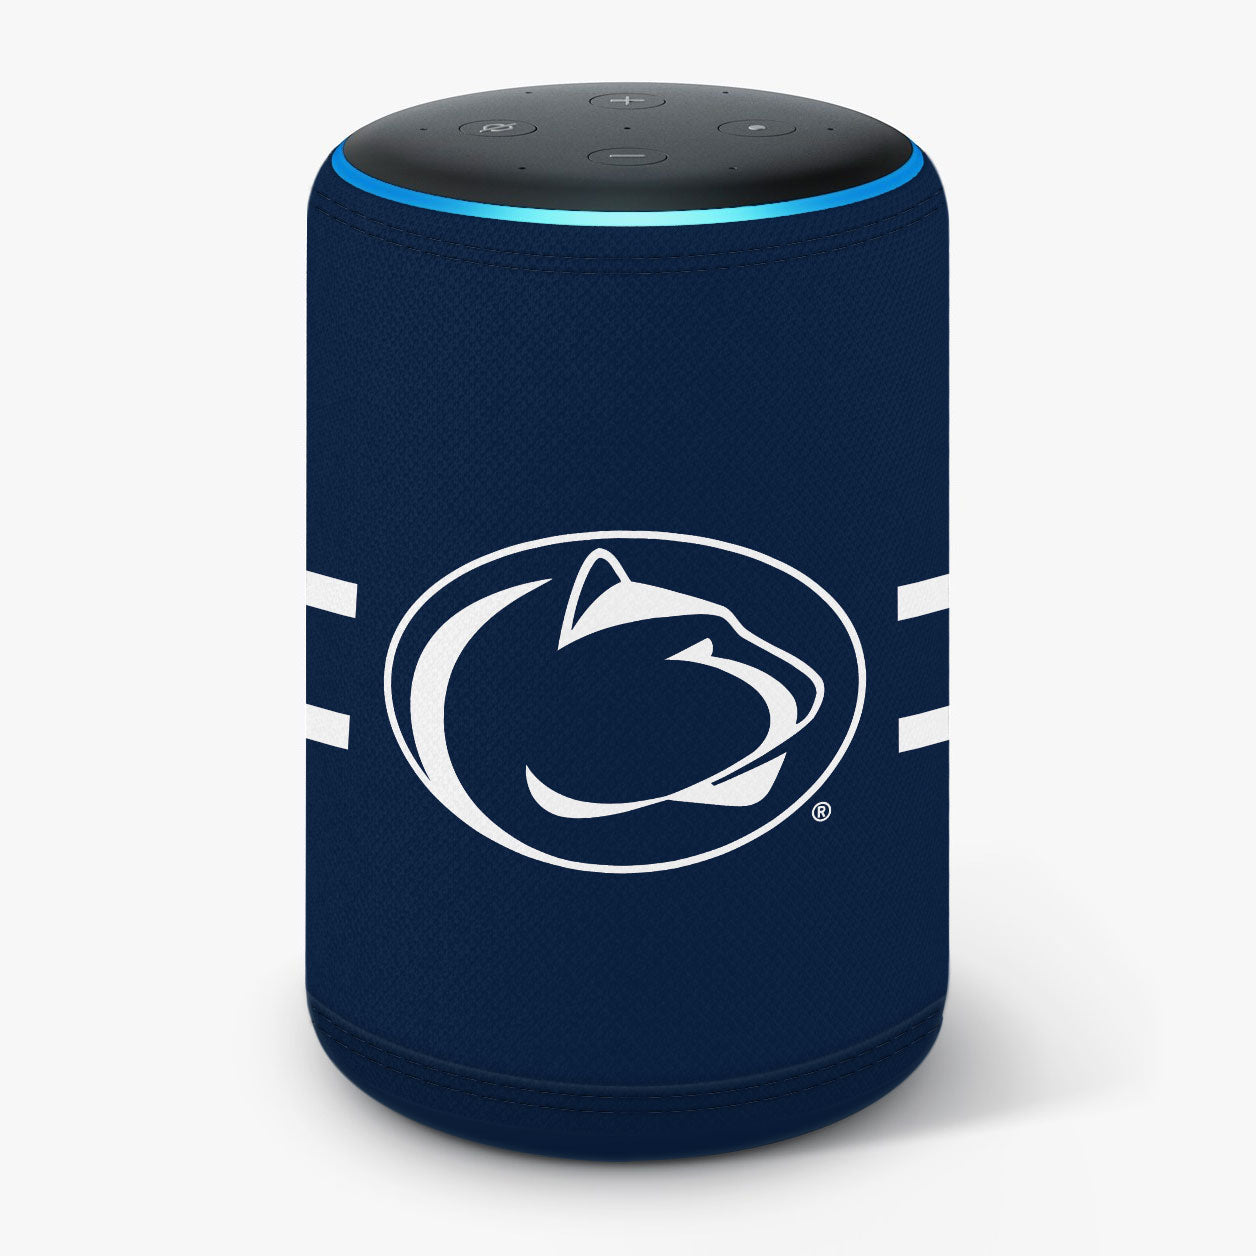 Penn State Nittany Lions Amazon Echo Covers